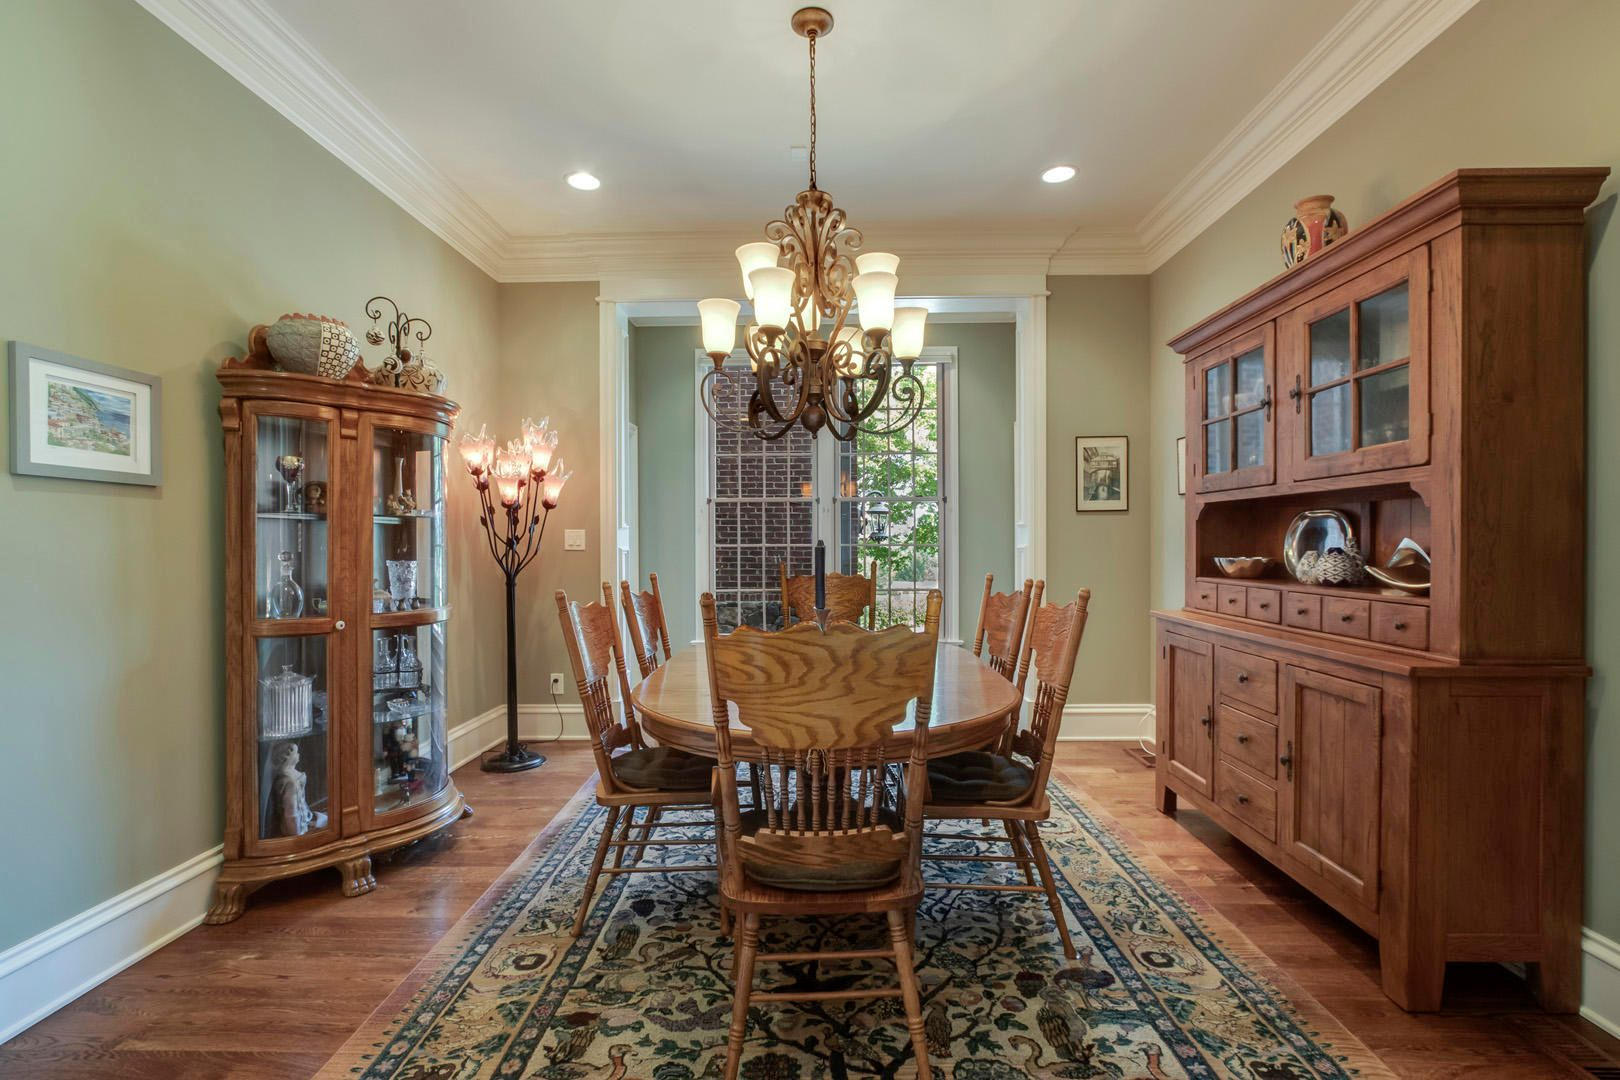 17_SouthernWay_438_Dining02